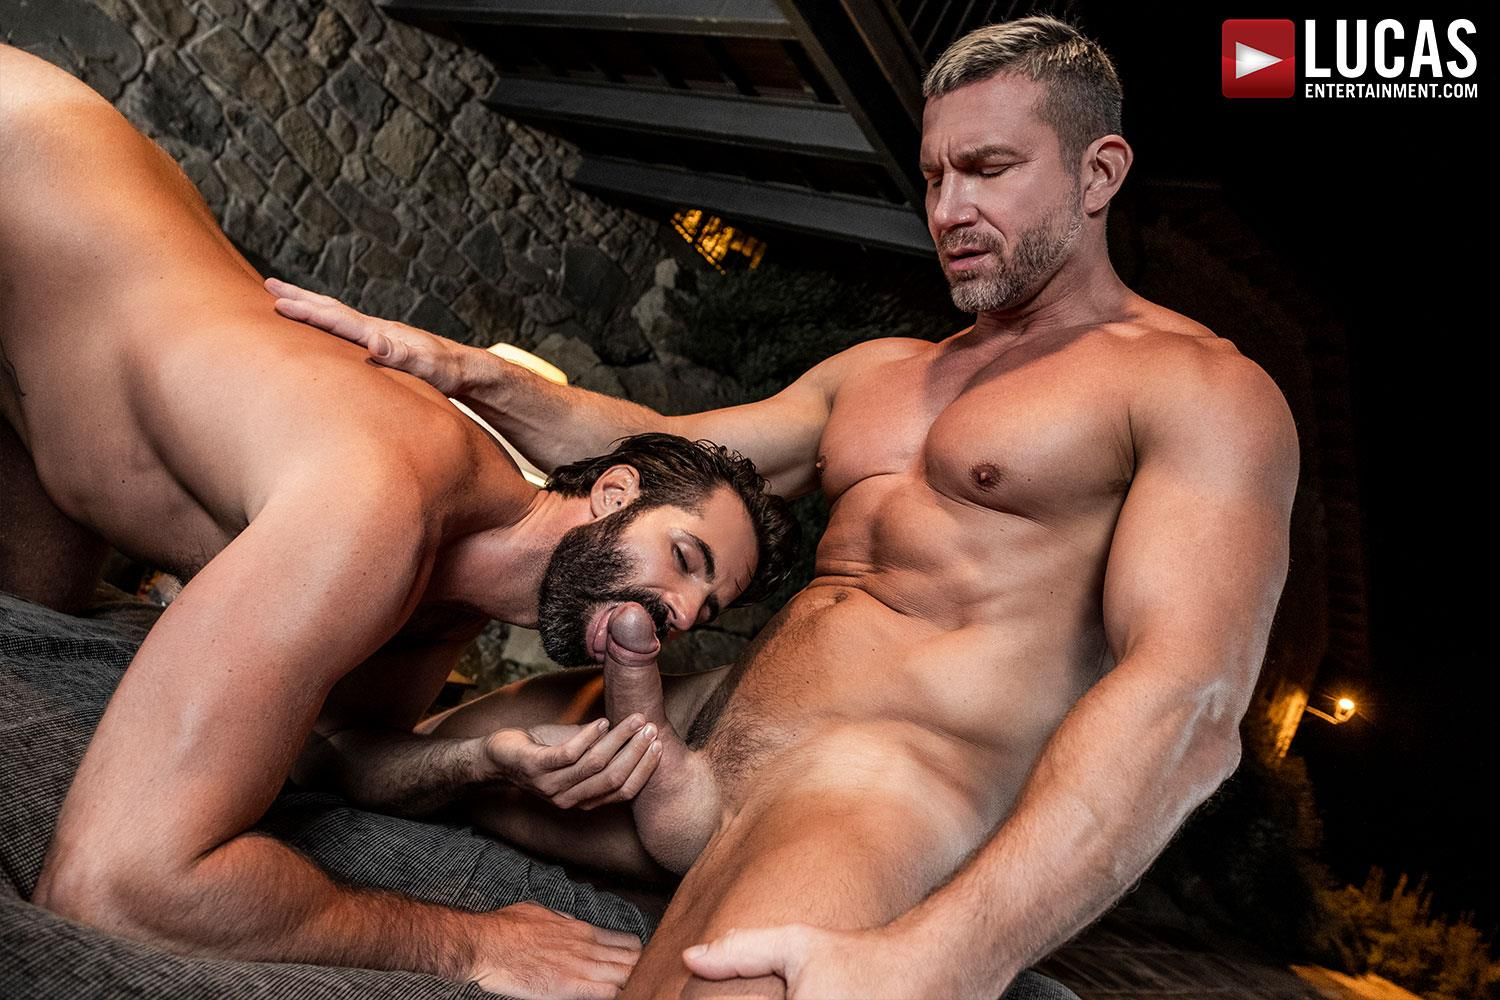 Lucas-Entertainment-Tomas-Brand-and-Dani-Robles-Big-Dick-Daddy-Barebacking-Younger-10 Muscle Daddy Tomas Brand Breeds Dani Robles With His Big Uncut Cock